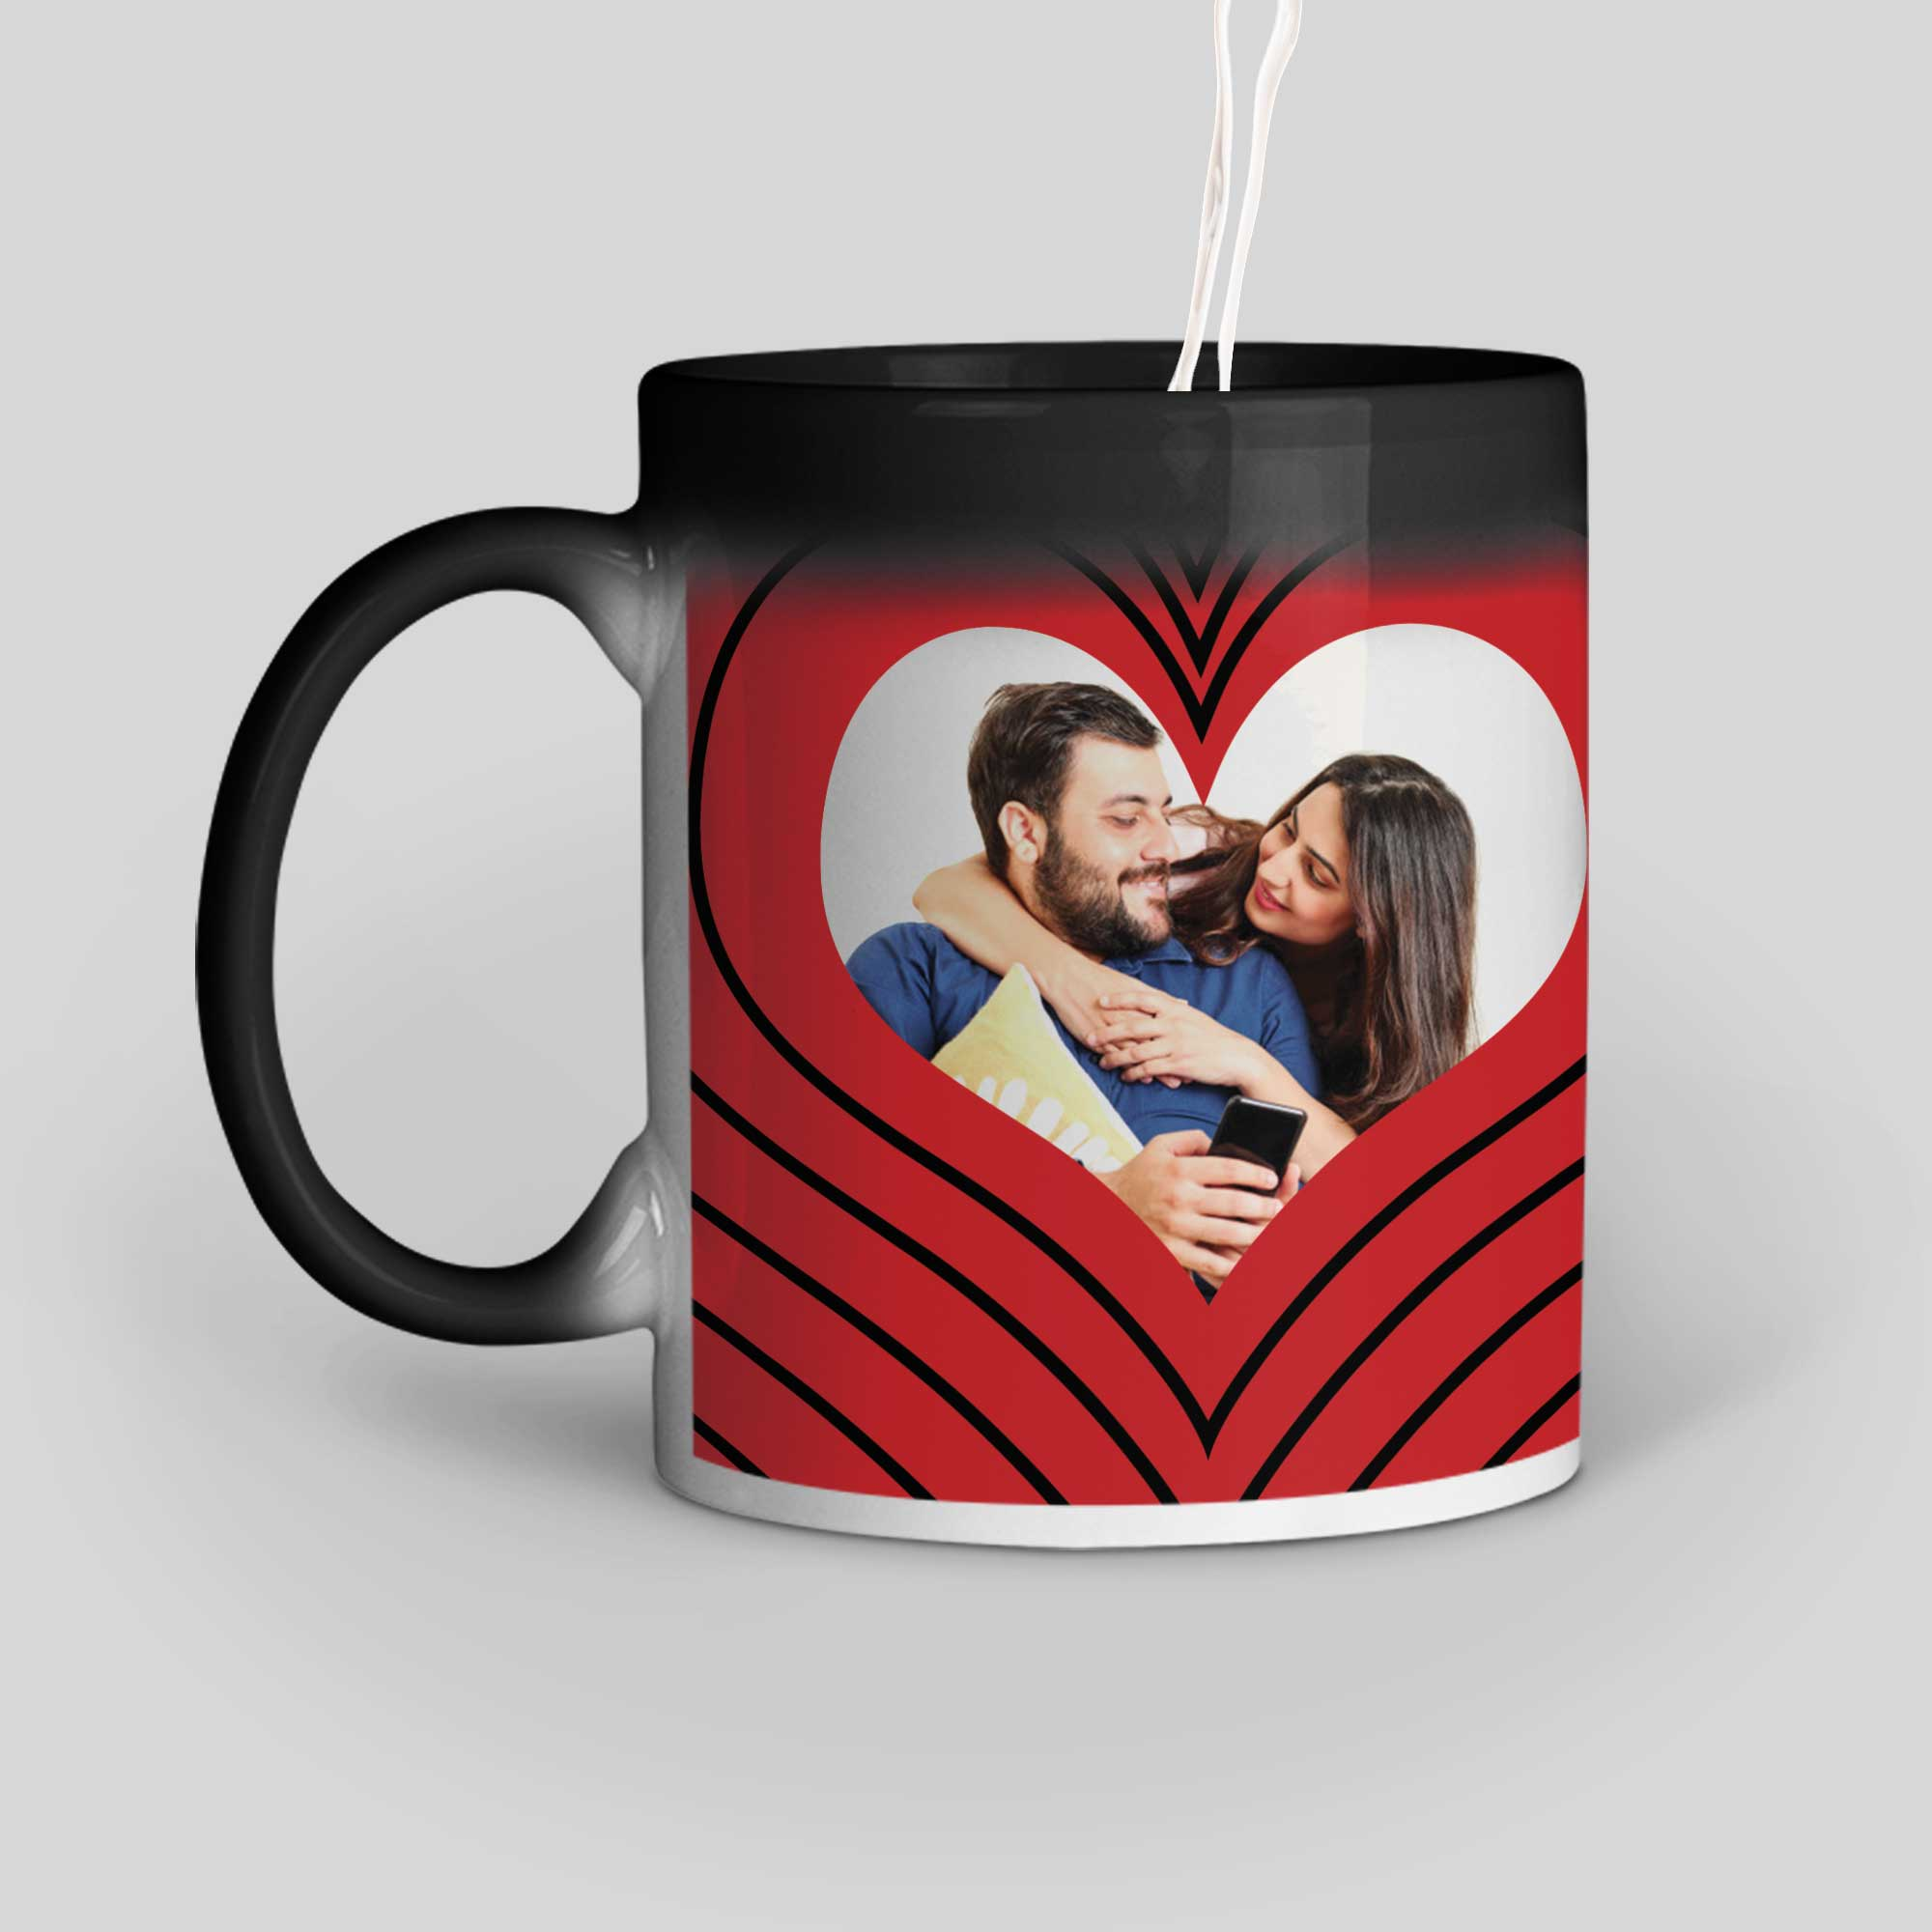 I Love You Personalized Magic Mug Left Side